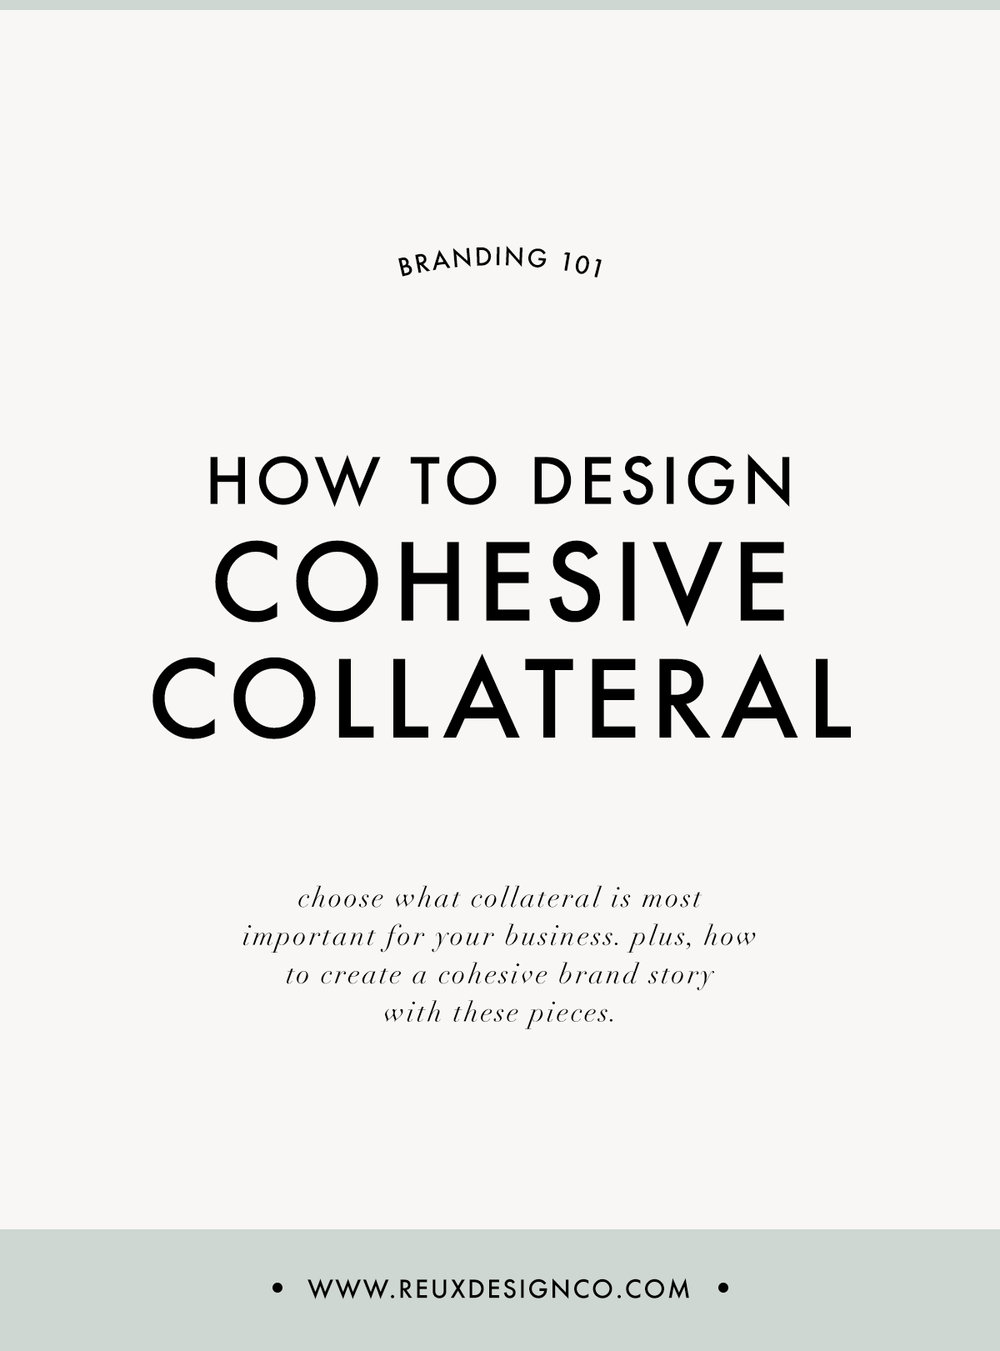 choosing and designing cohesive collateral for your creative business | Reux Design Co.